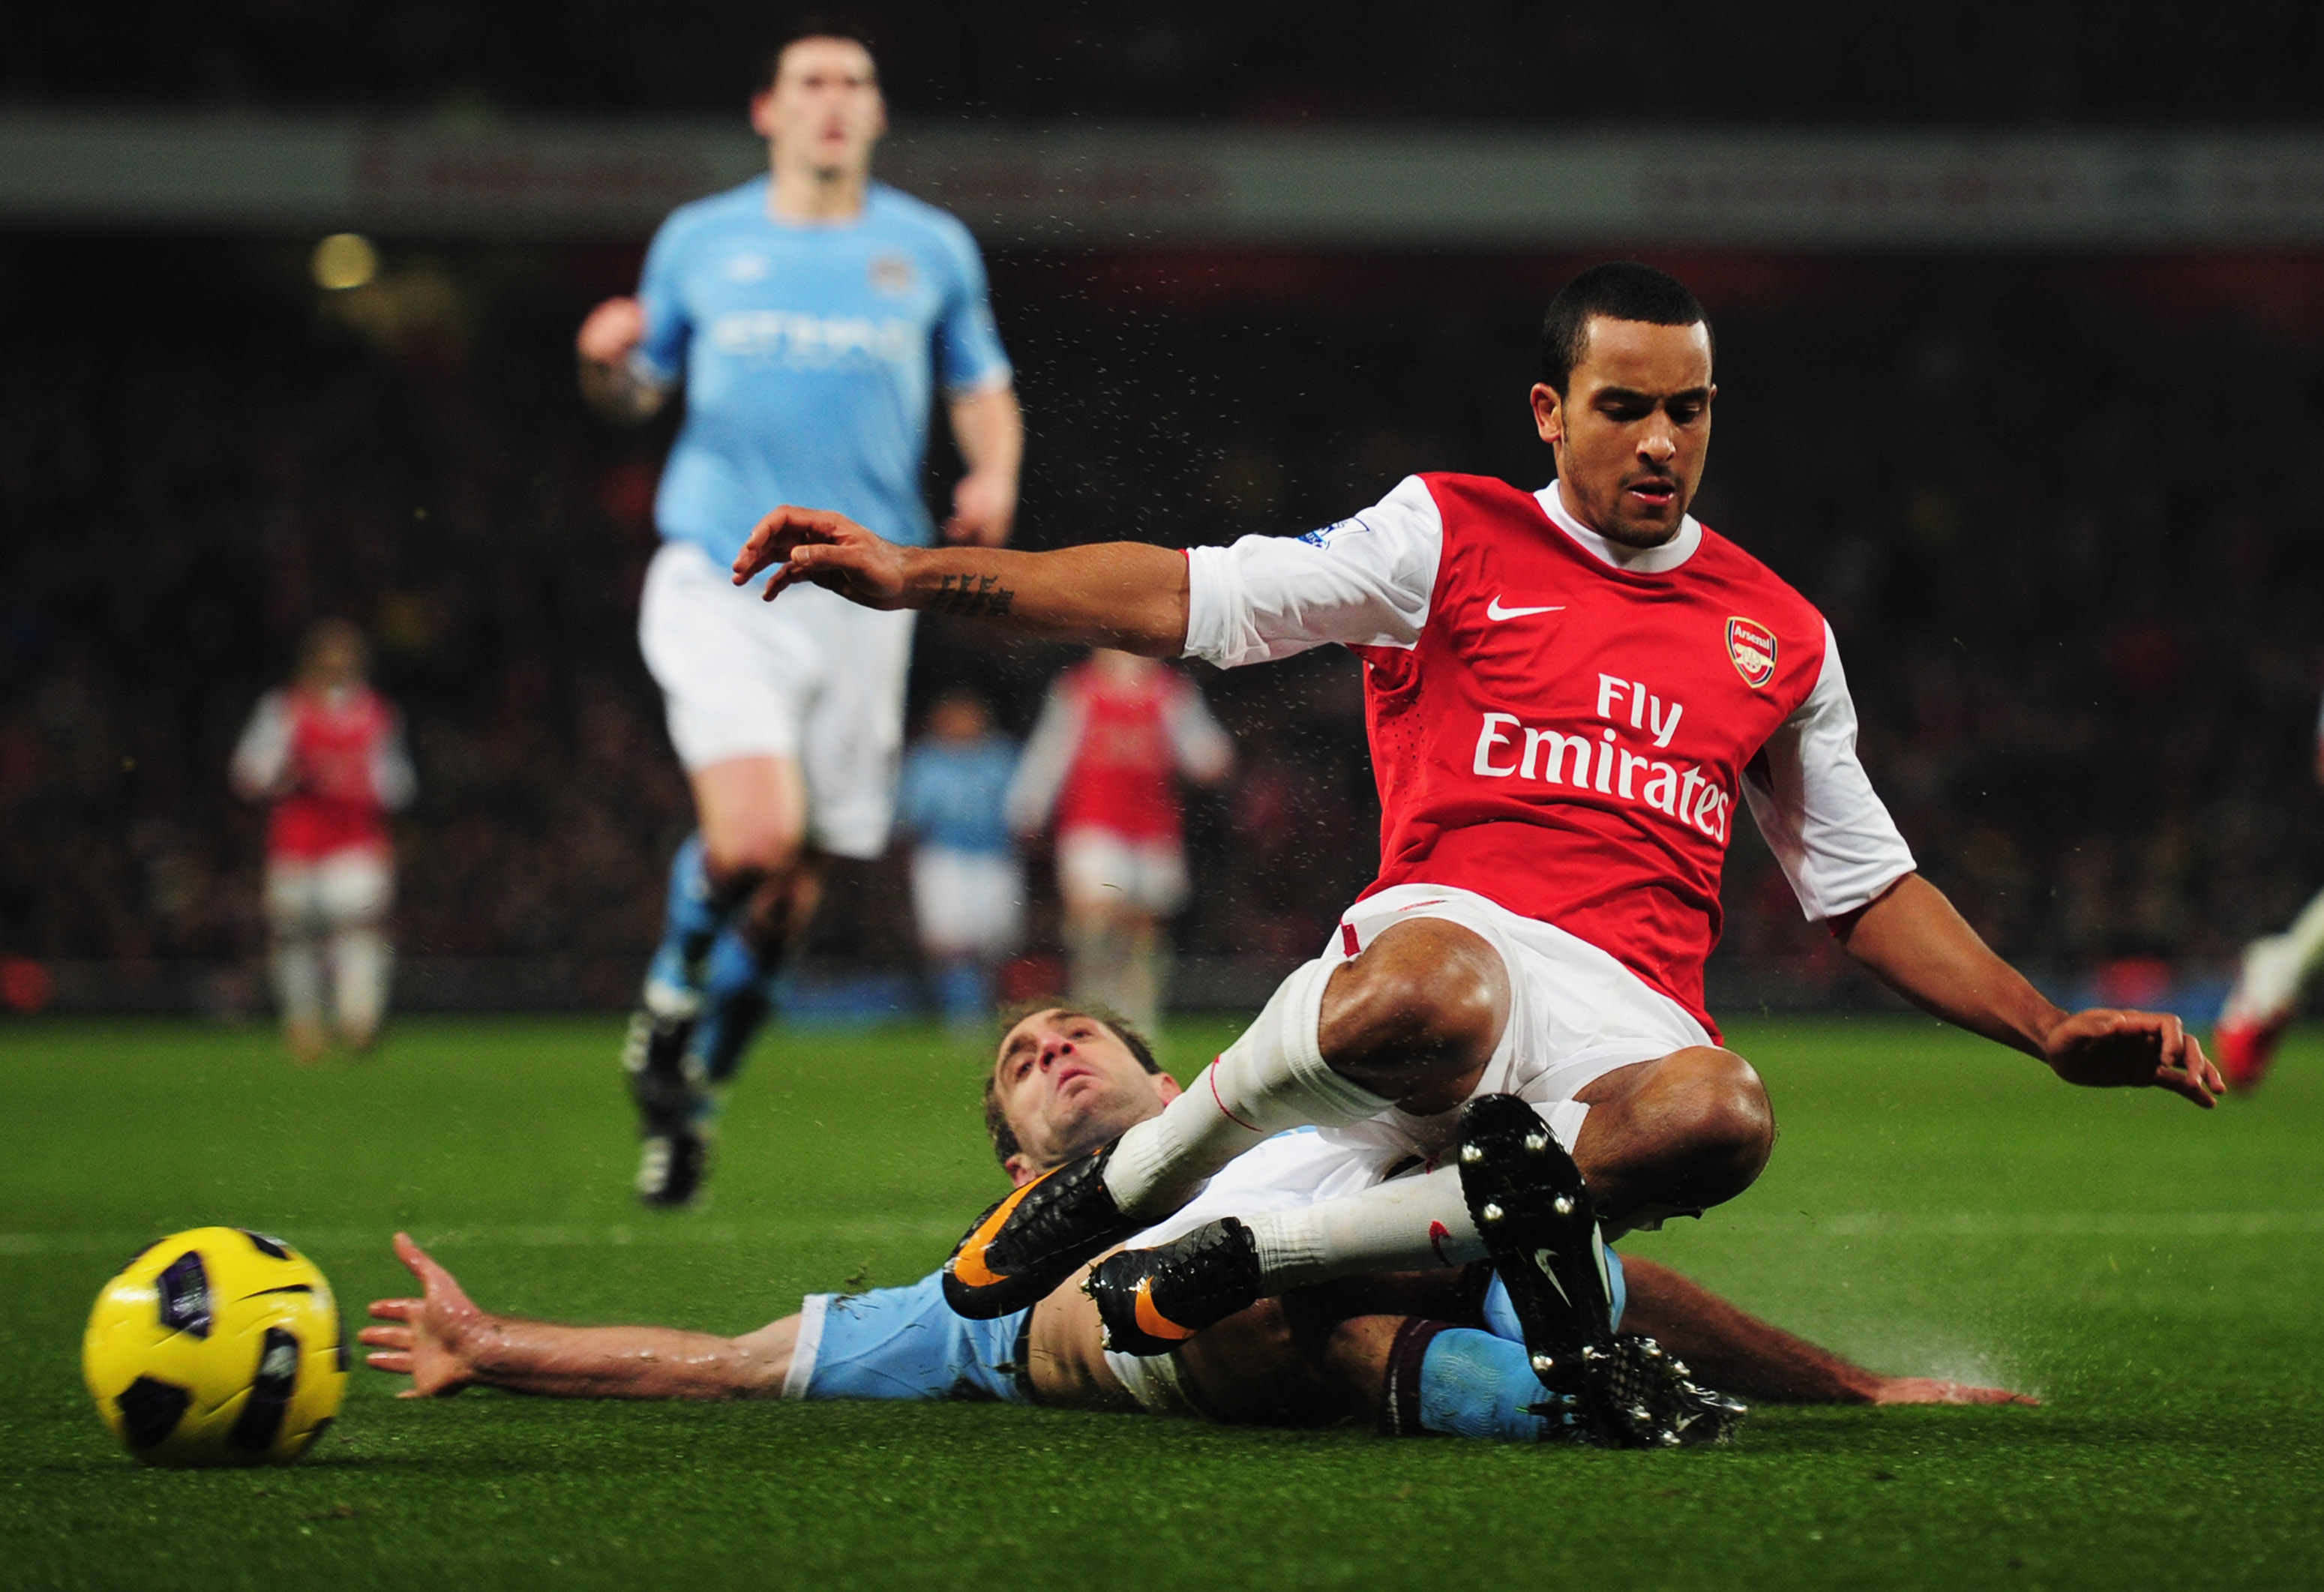 LONDON, ENGLAND - JANUARY 05:  Theo Walcott of Arsenal is tackled by Pablo Zabaleta of Manchester City during the Barclays Premier League match between Arsenal and Manchester City at the Emirates Stadium on January 5, 2011 in London, England.  (Photo by S